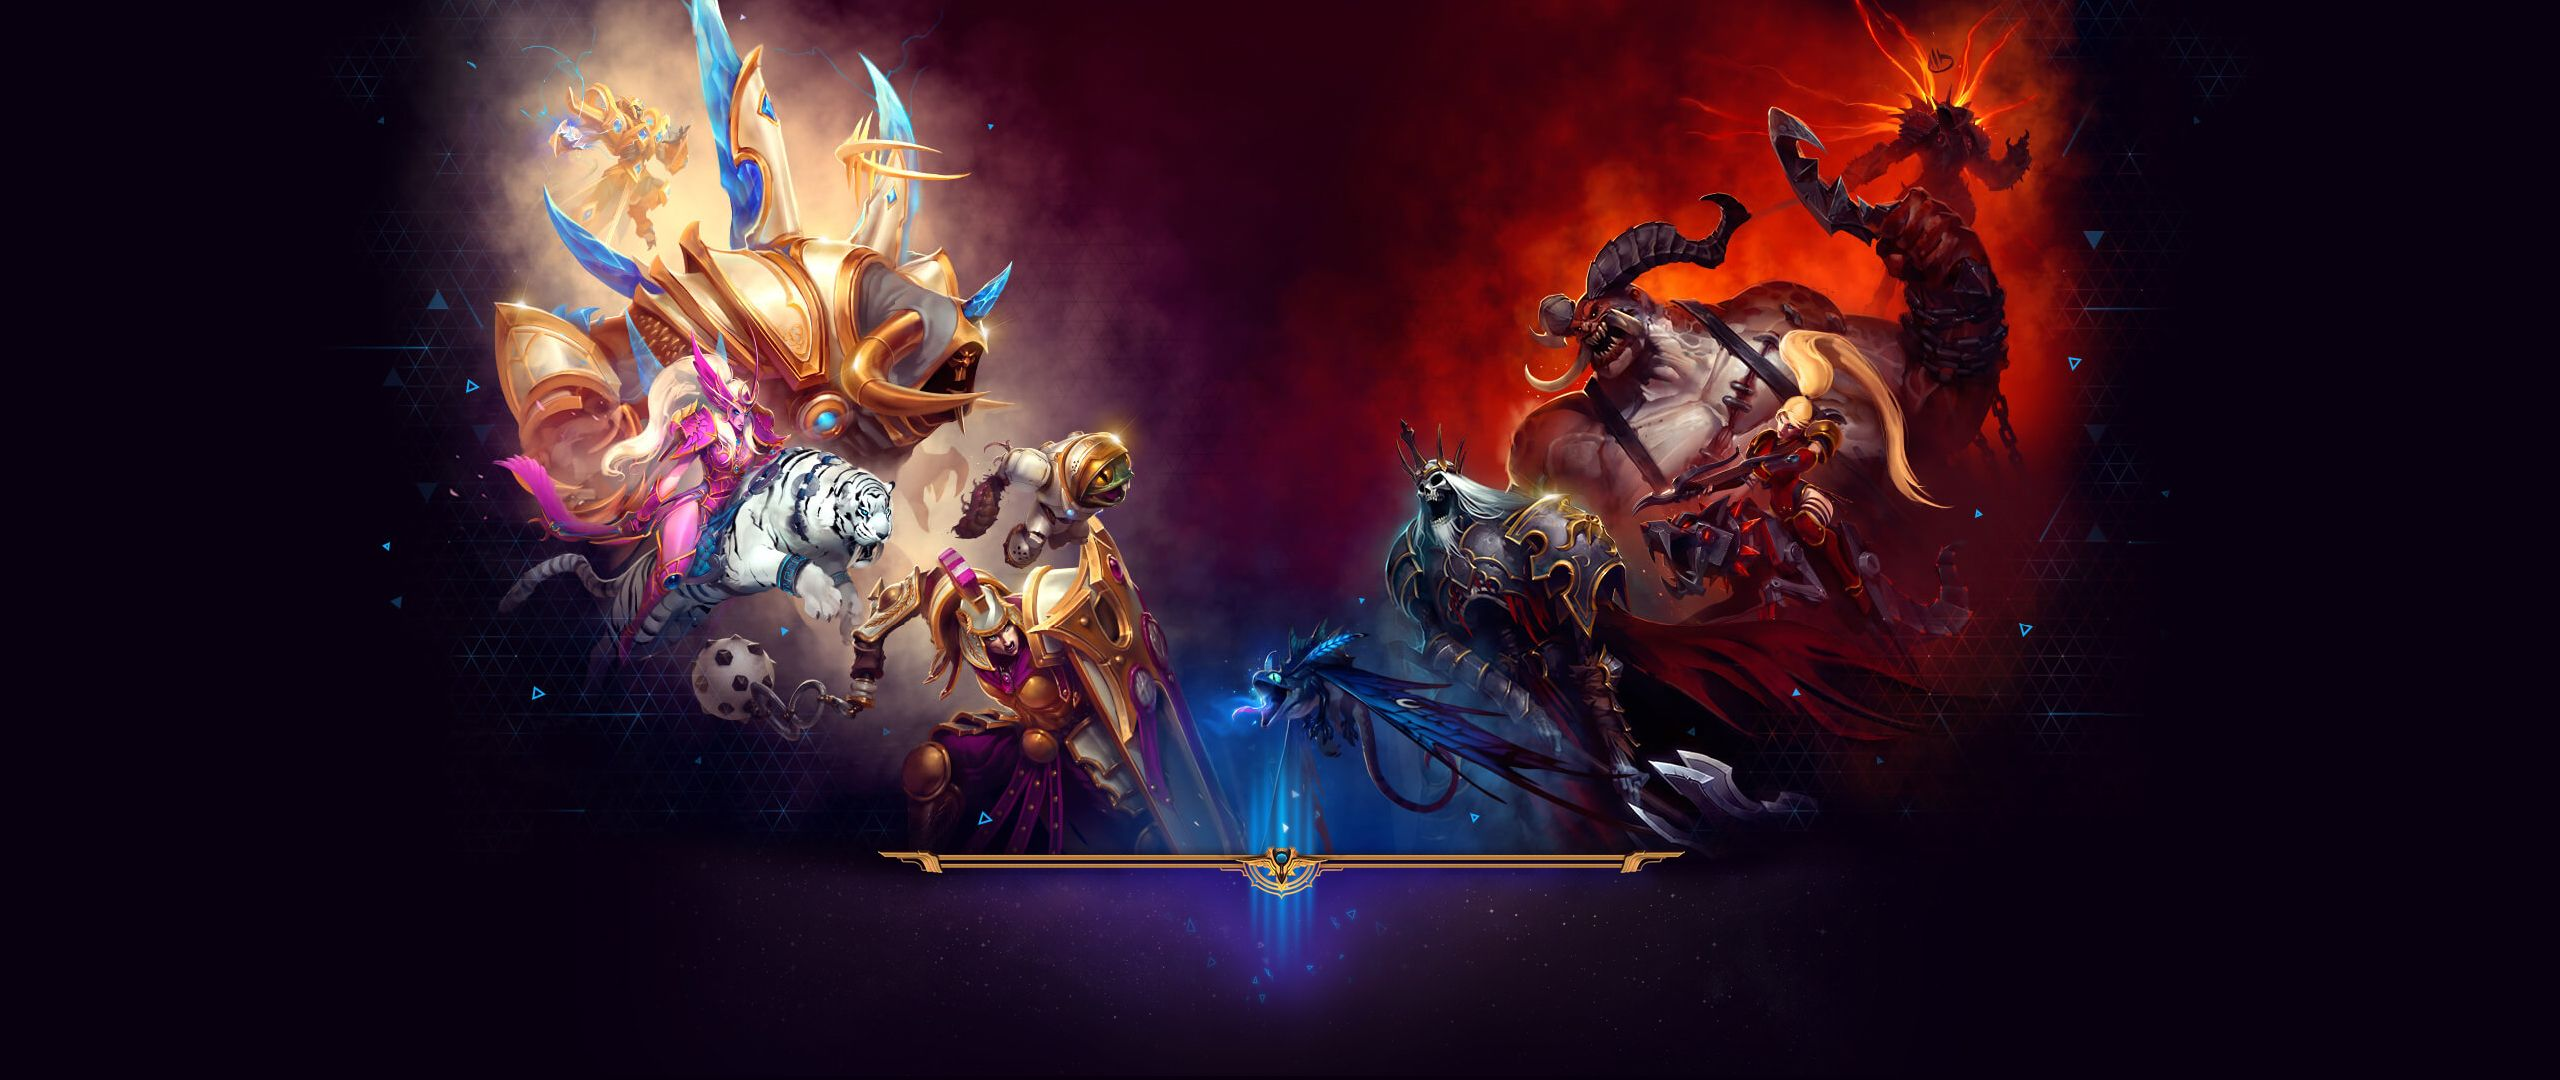 Heroes Of The Storm Wallpapers Top Free Heroes Of The Storm